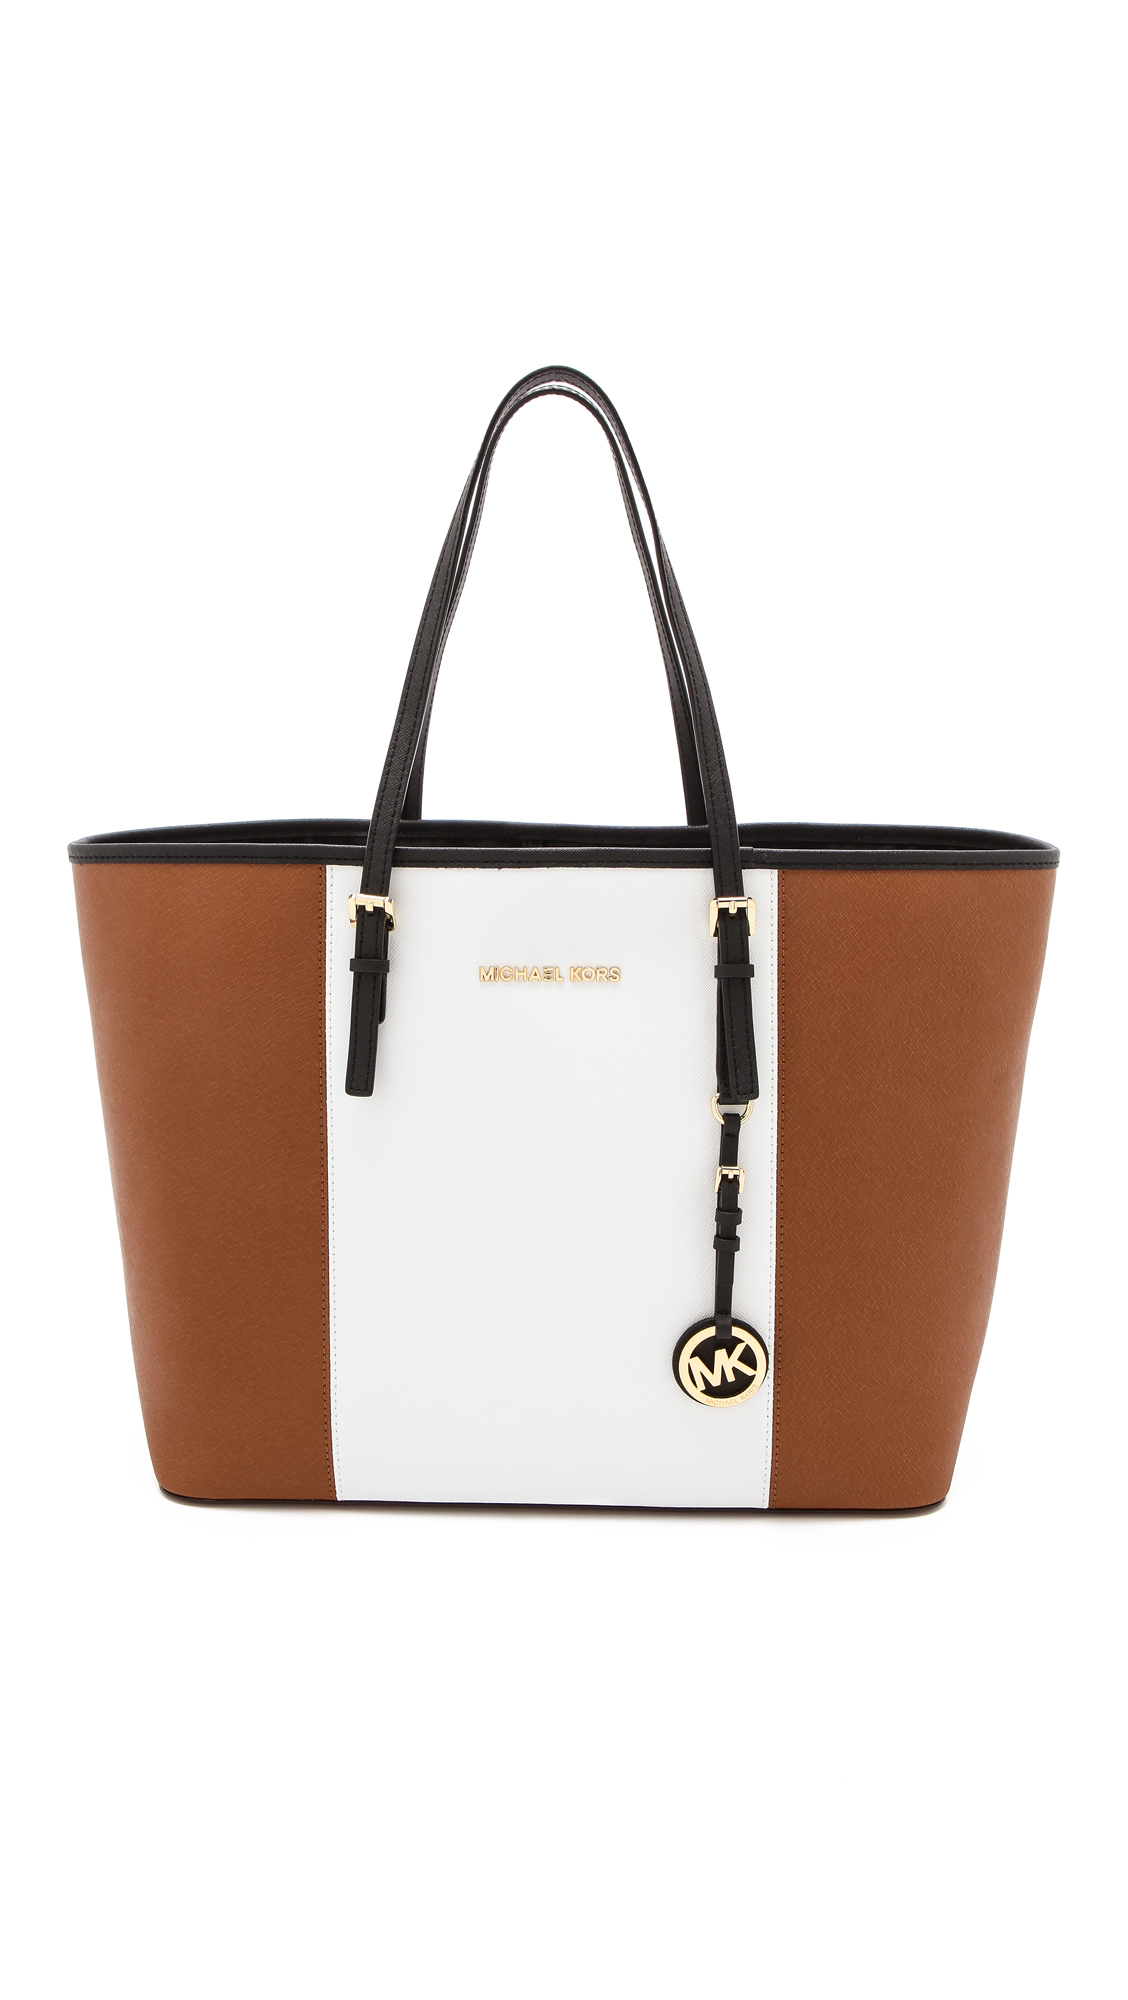 MICHAEL Michael Kors Jet Set Travel Travel Tote - Luggage/White/Black in Brown